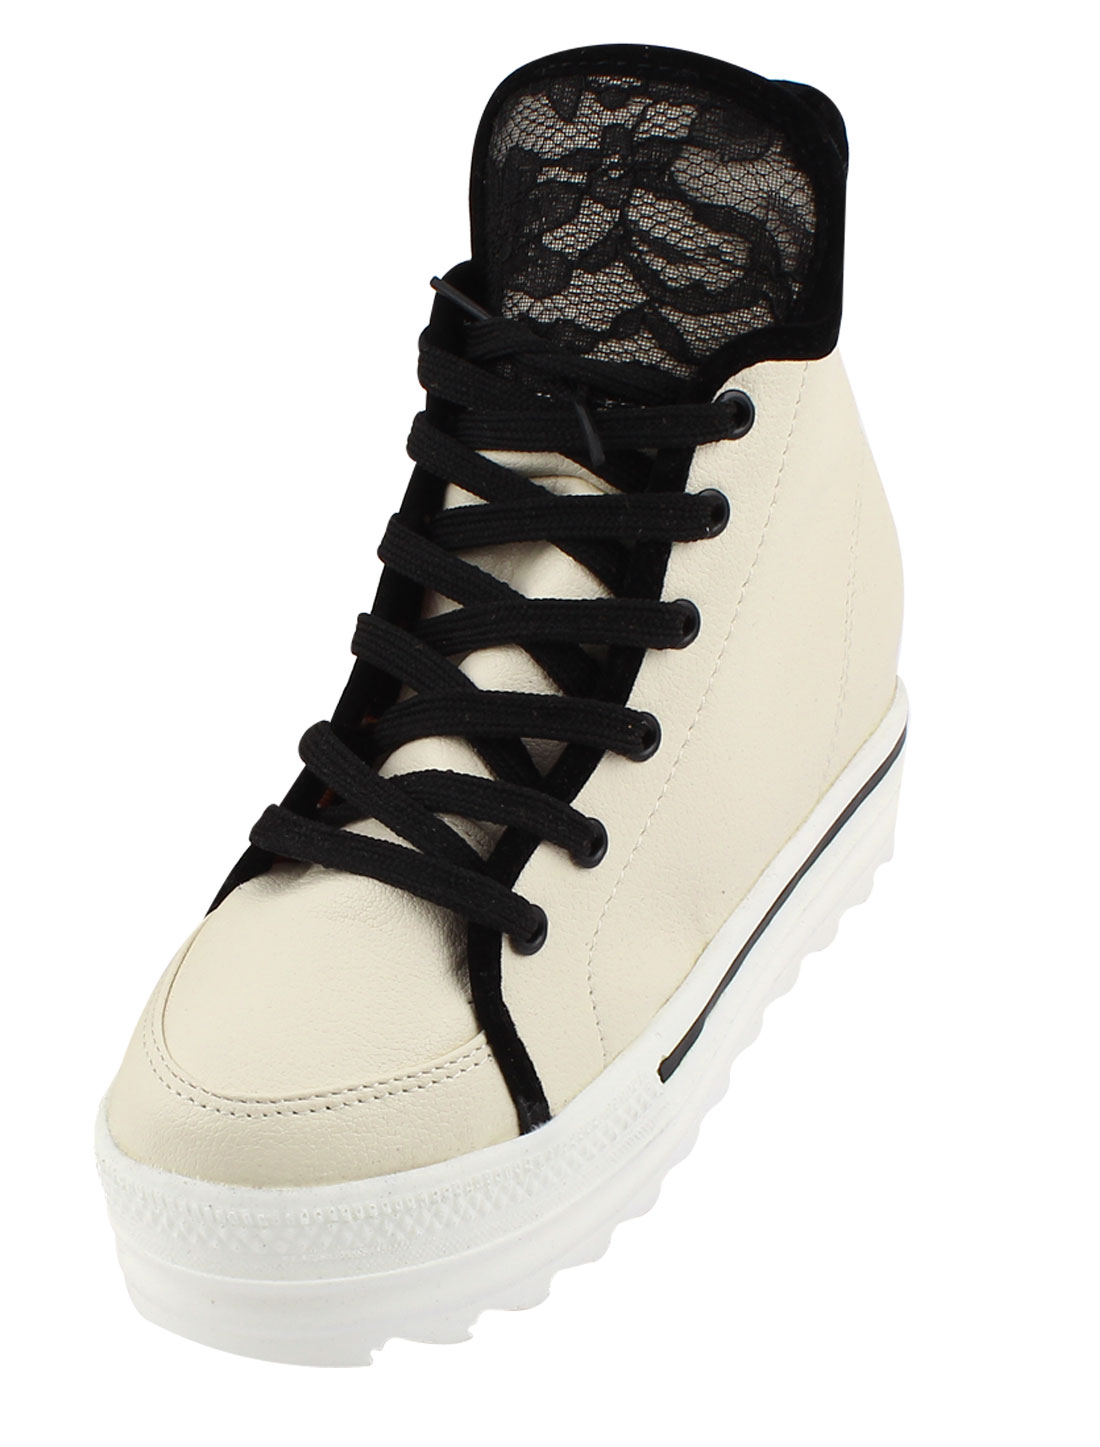 Faux Leather Lace Up Shoes High Top Sneakers Beige US 7 for Women